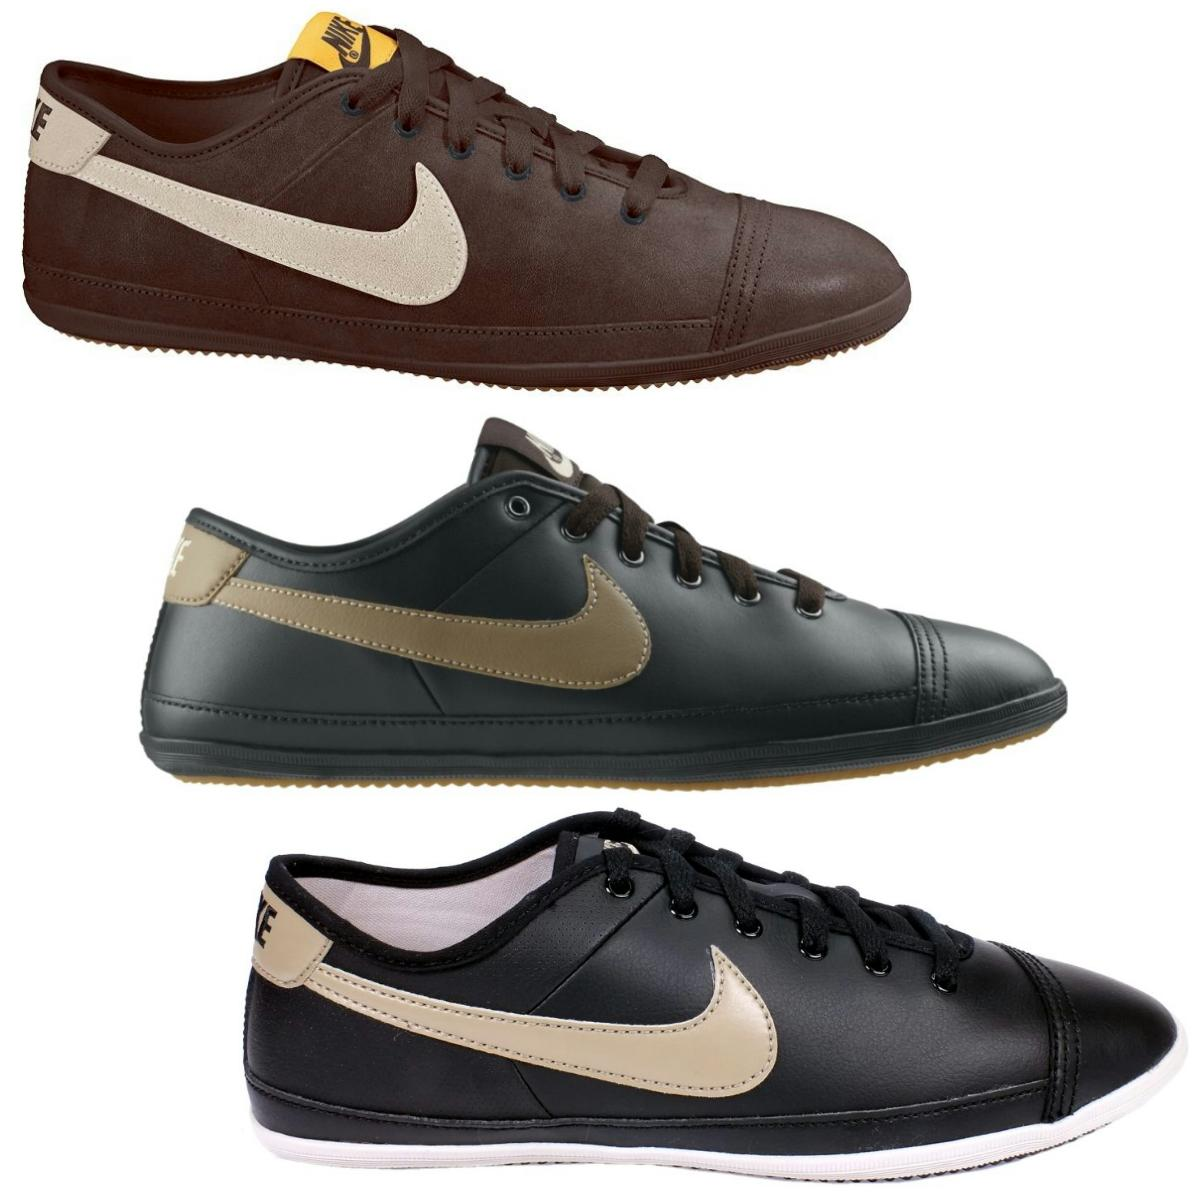 sneakers trainers nike flash leather men shoes ebay. Black Bedroom Furniture Sets. Home Design Ideas